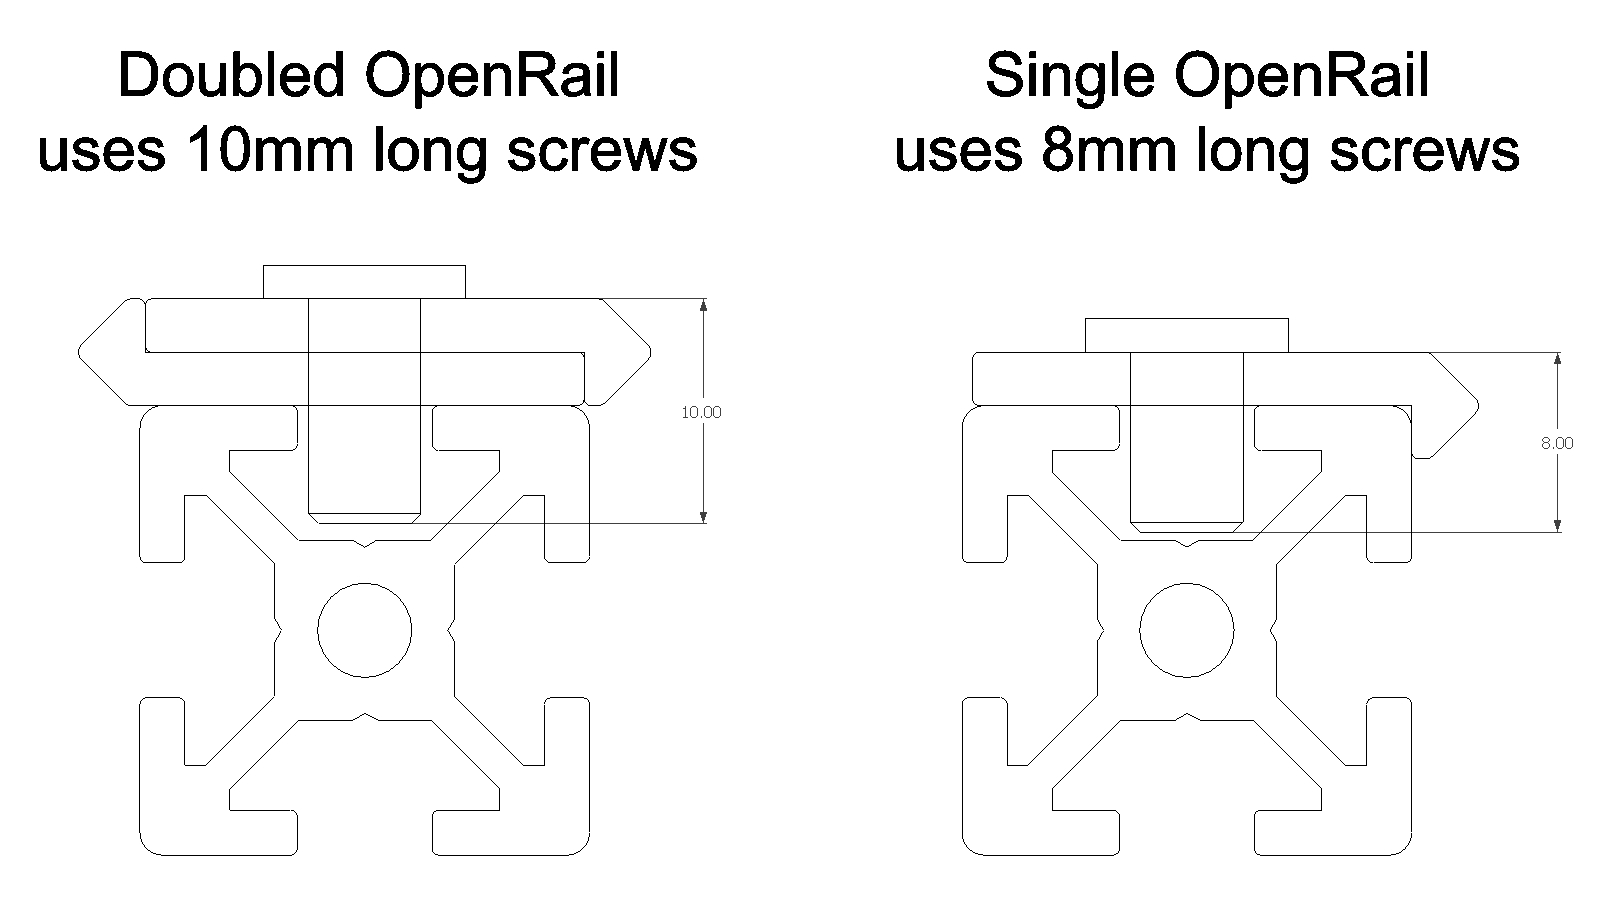 openrail-mounting-screw-size.jpg